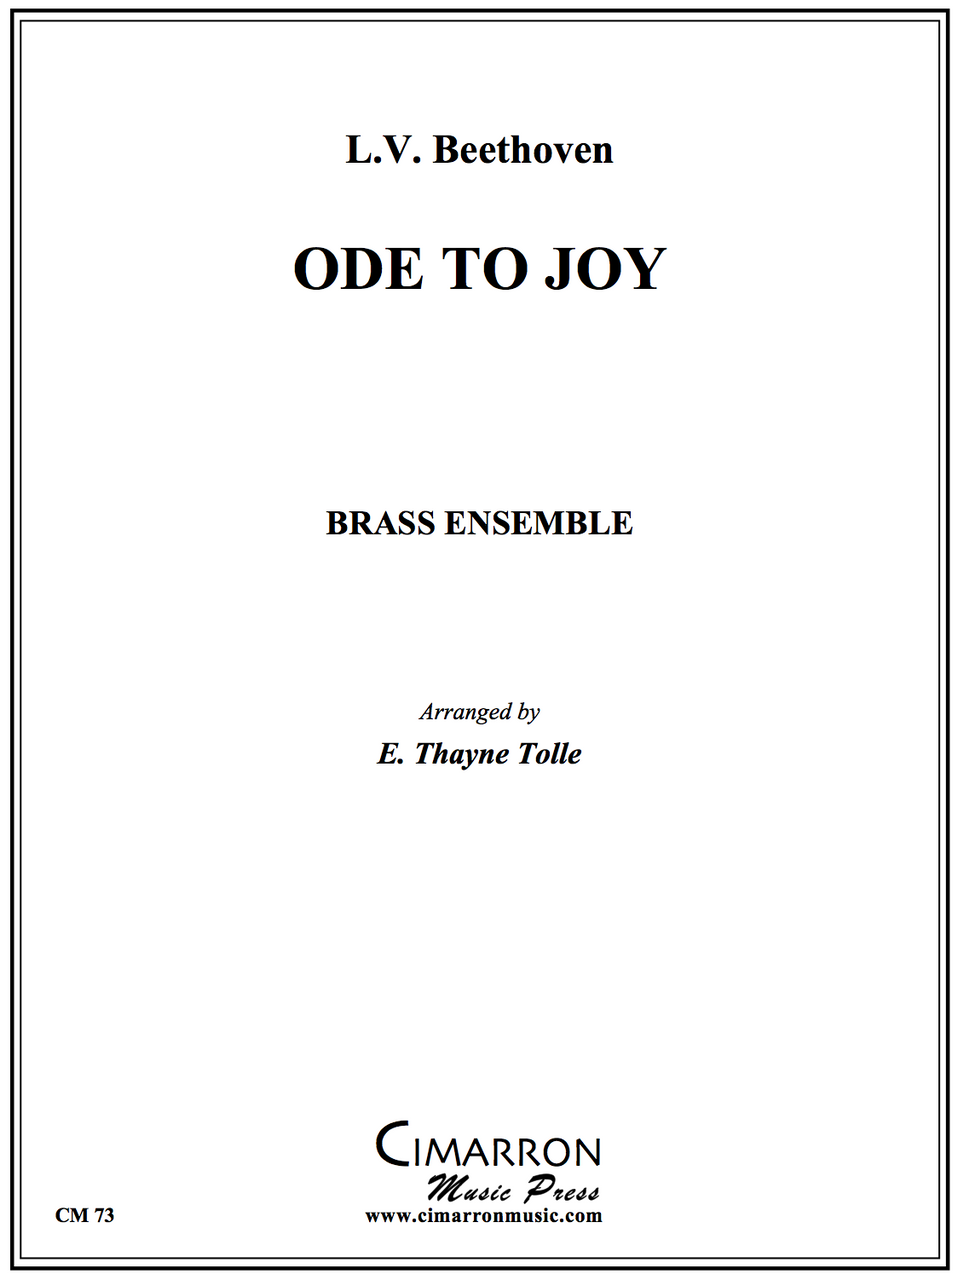 Beethoven - Ode to joy - Brass Ensemble